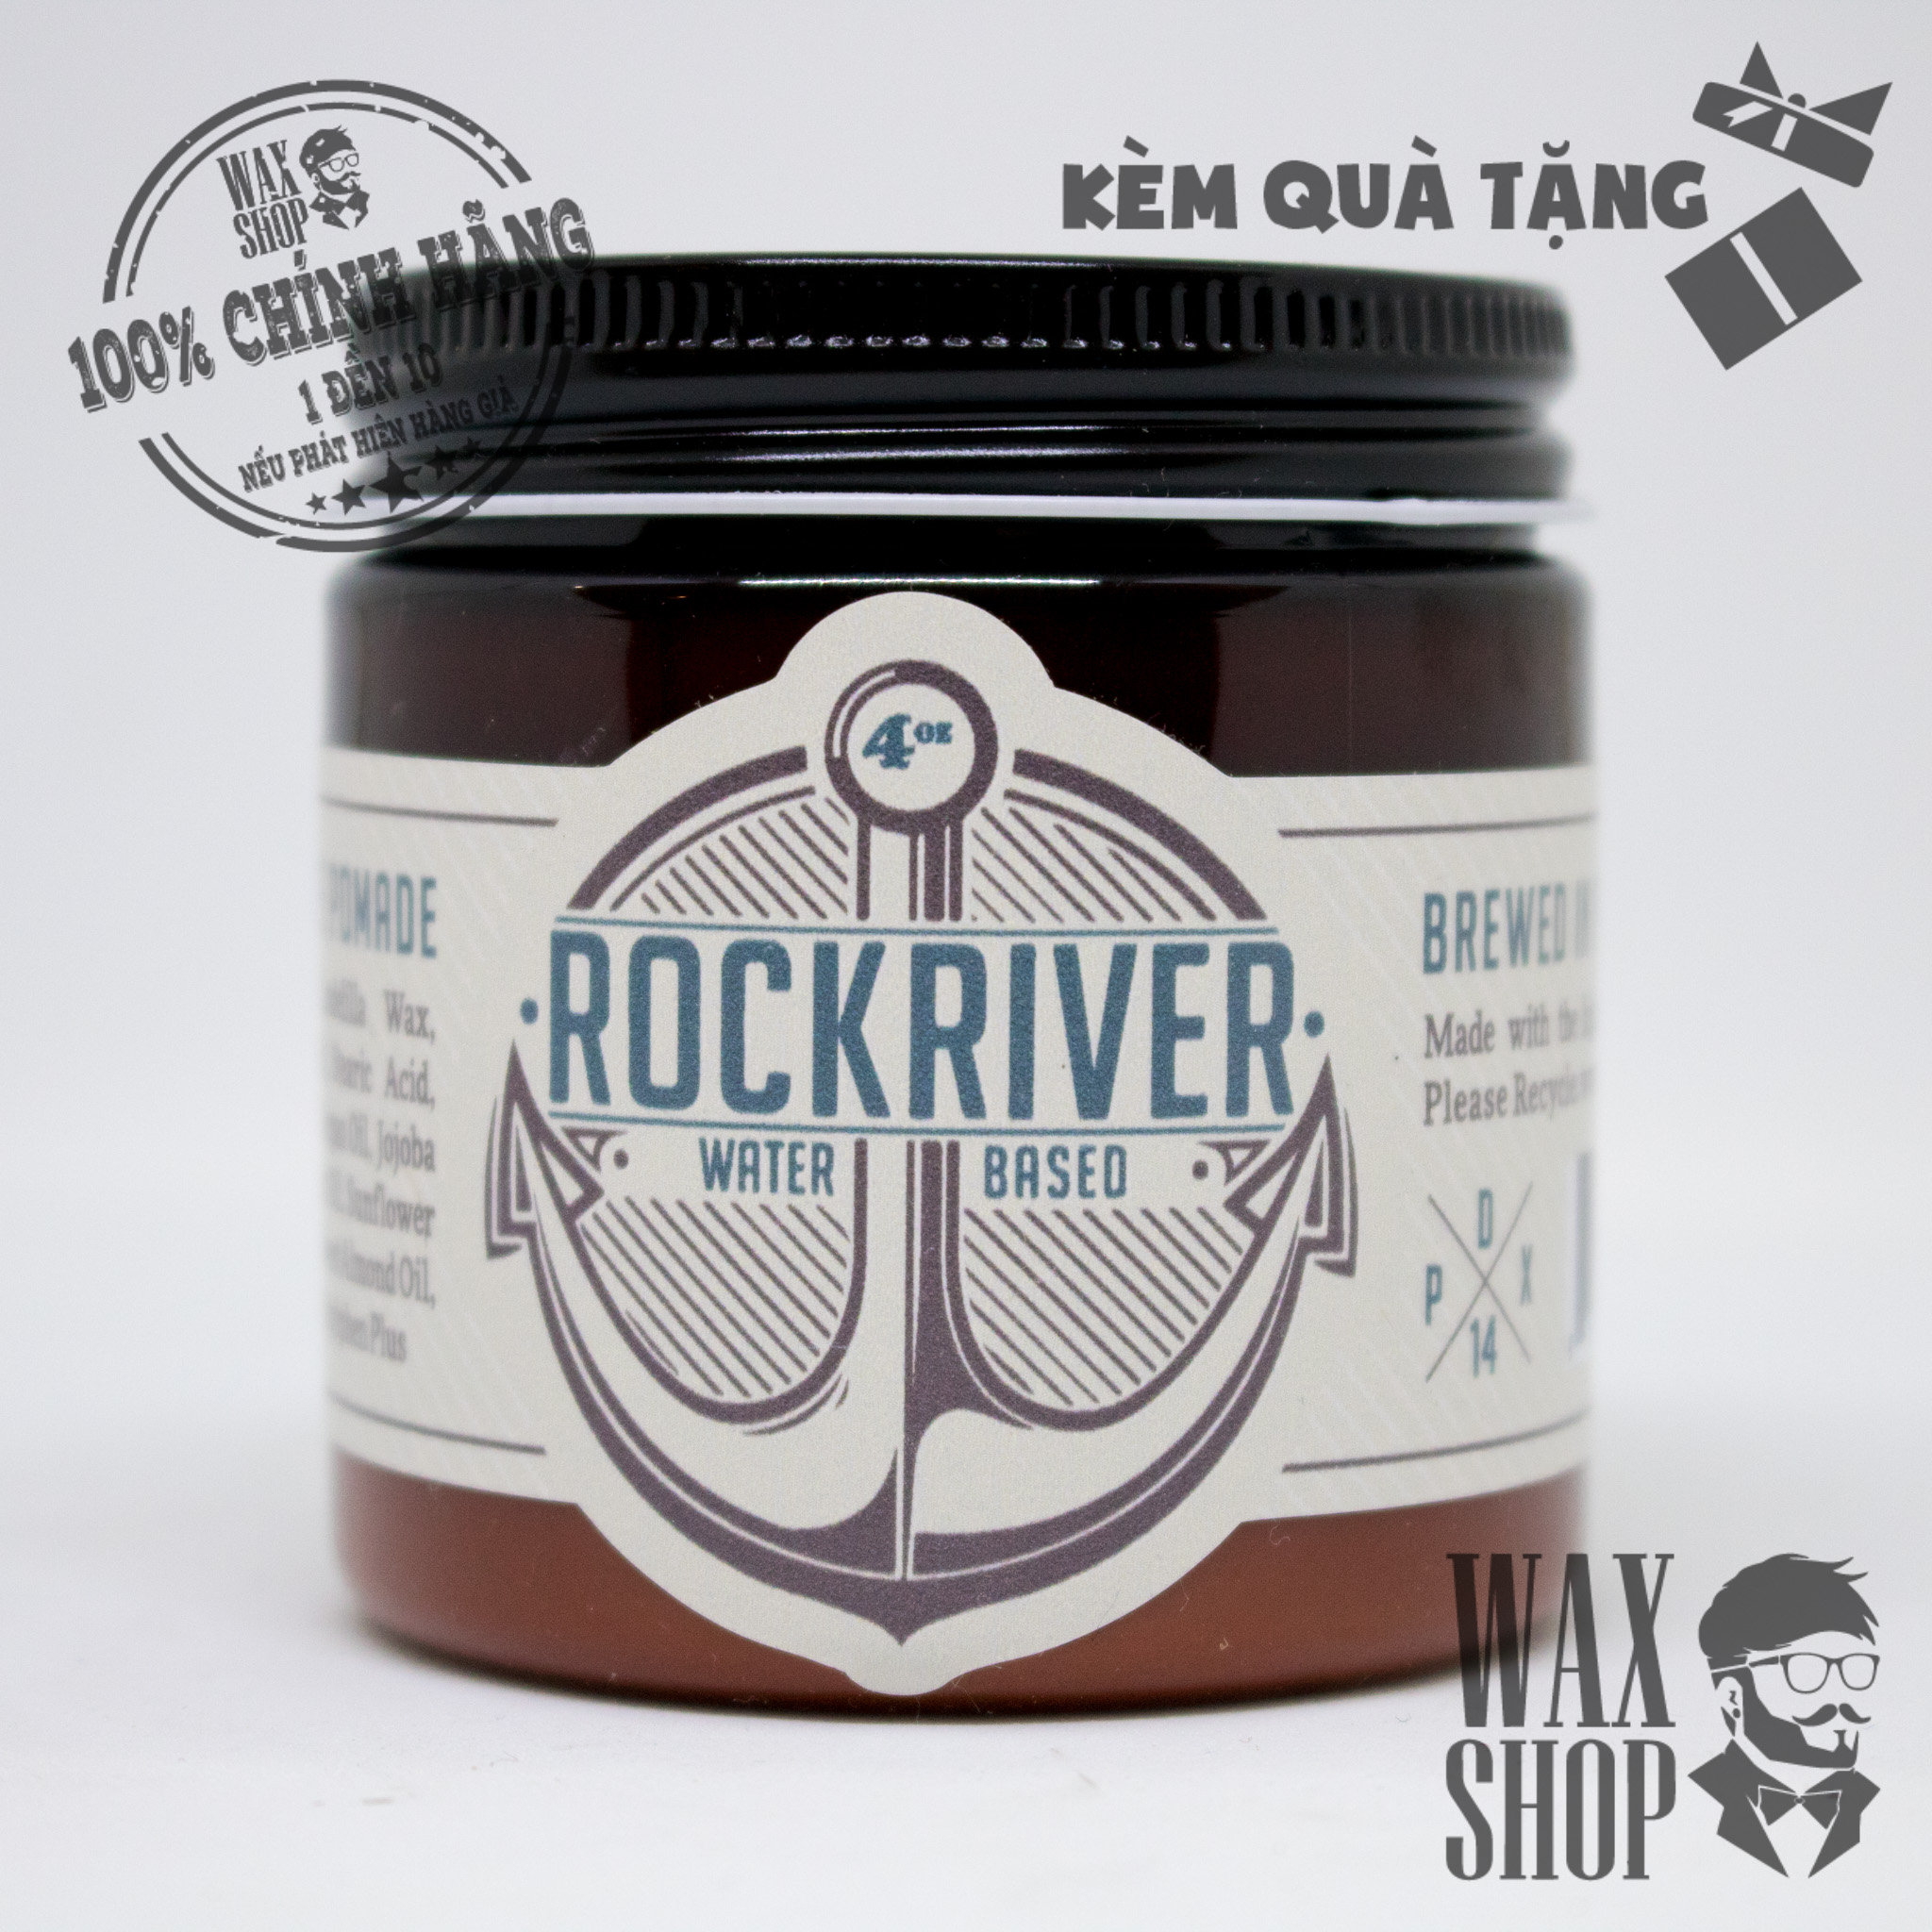 Rockriver - Water Based Pomade